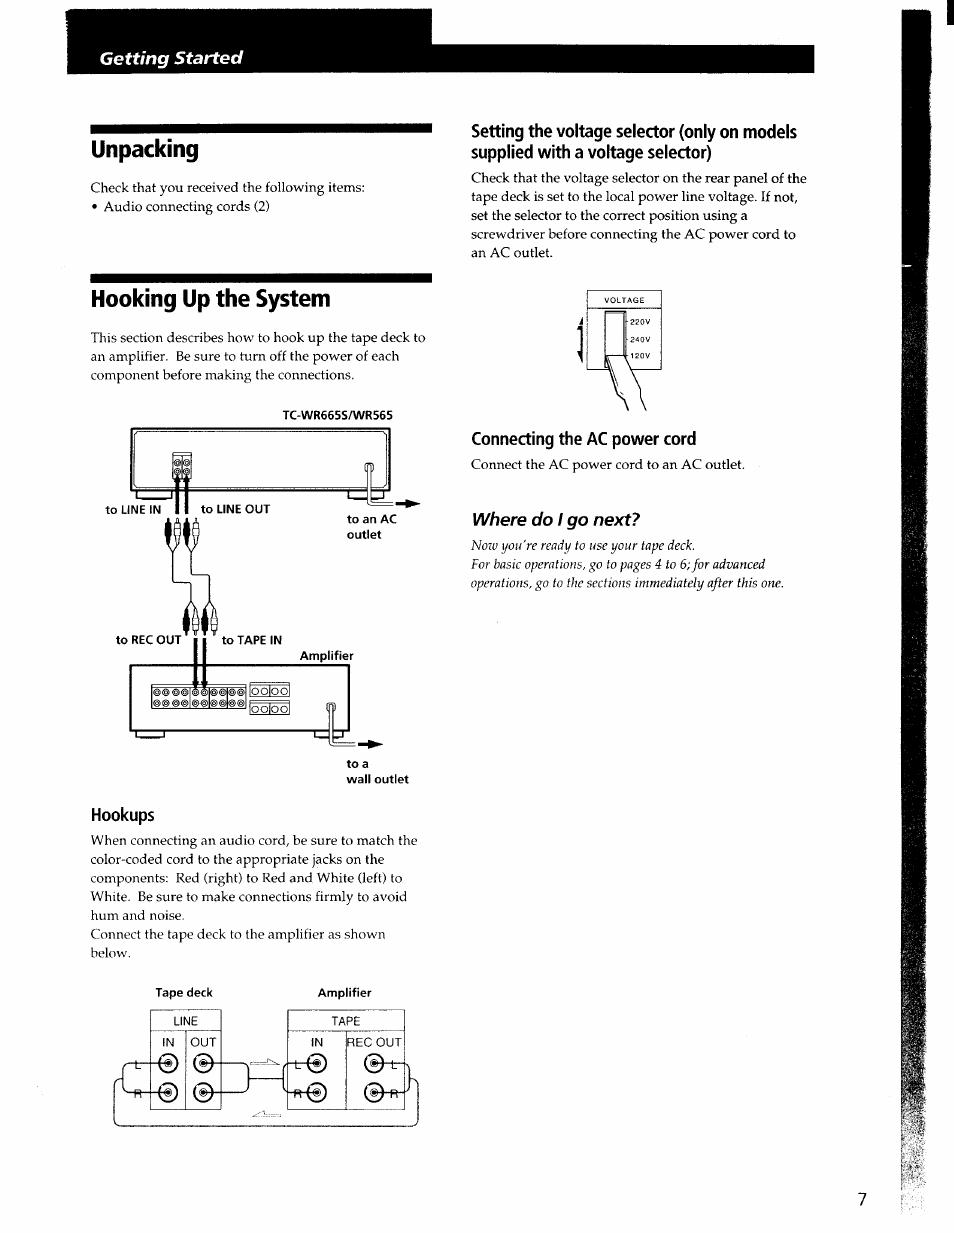 Unpacking Hooking Up The System Connecting Ac Power Cord Wiring Sony Tc Wr565 User Manual Page 7 20